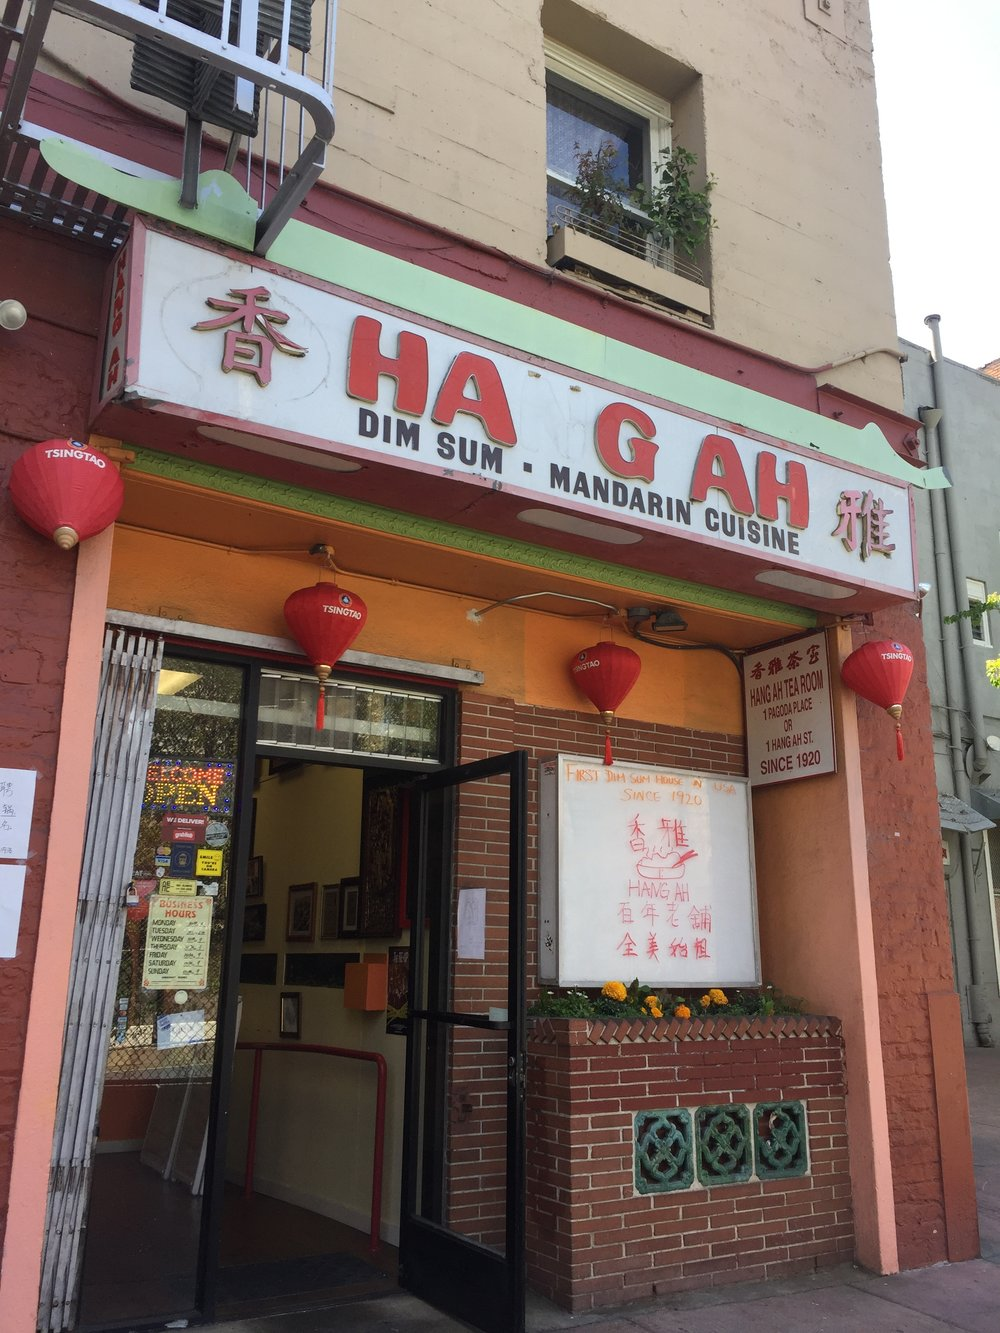 This was completely by accident, as I was convinced there were no sit-down dim sum restaurants in San Francisco via majorly surface-level Yelp search. Hang Ah Dim Sum House has been around since 1920 and their address is pretty cool: 1 Pagoda Place in Chinatown.